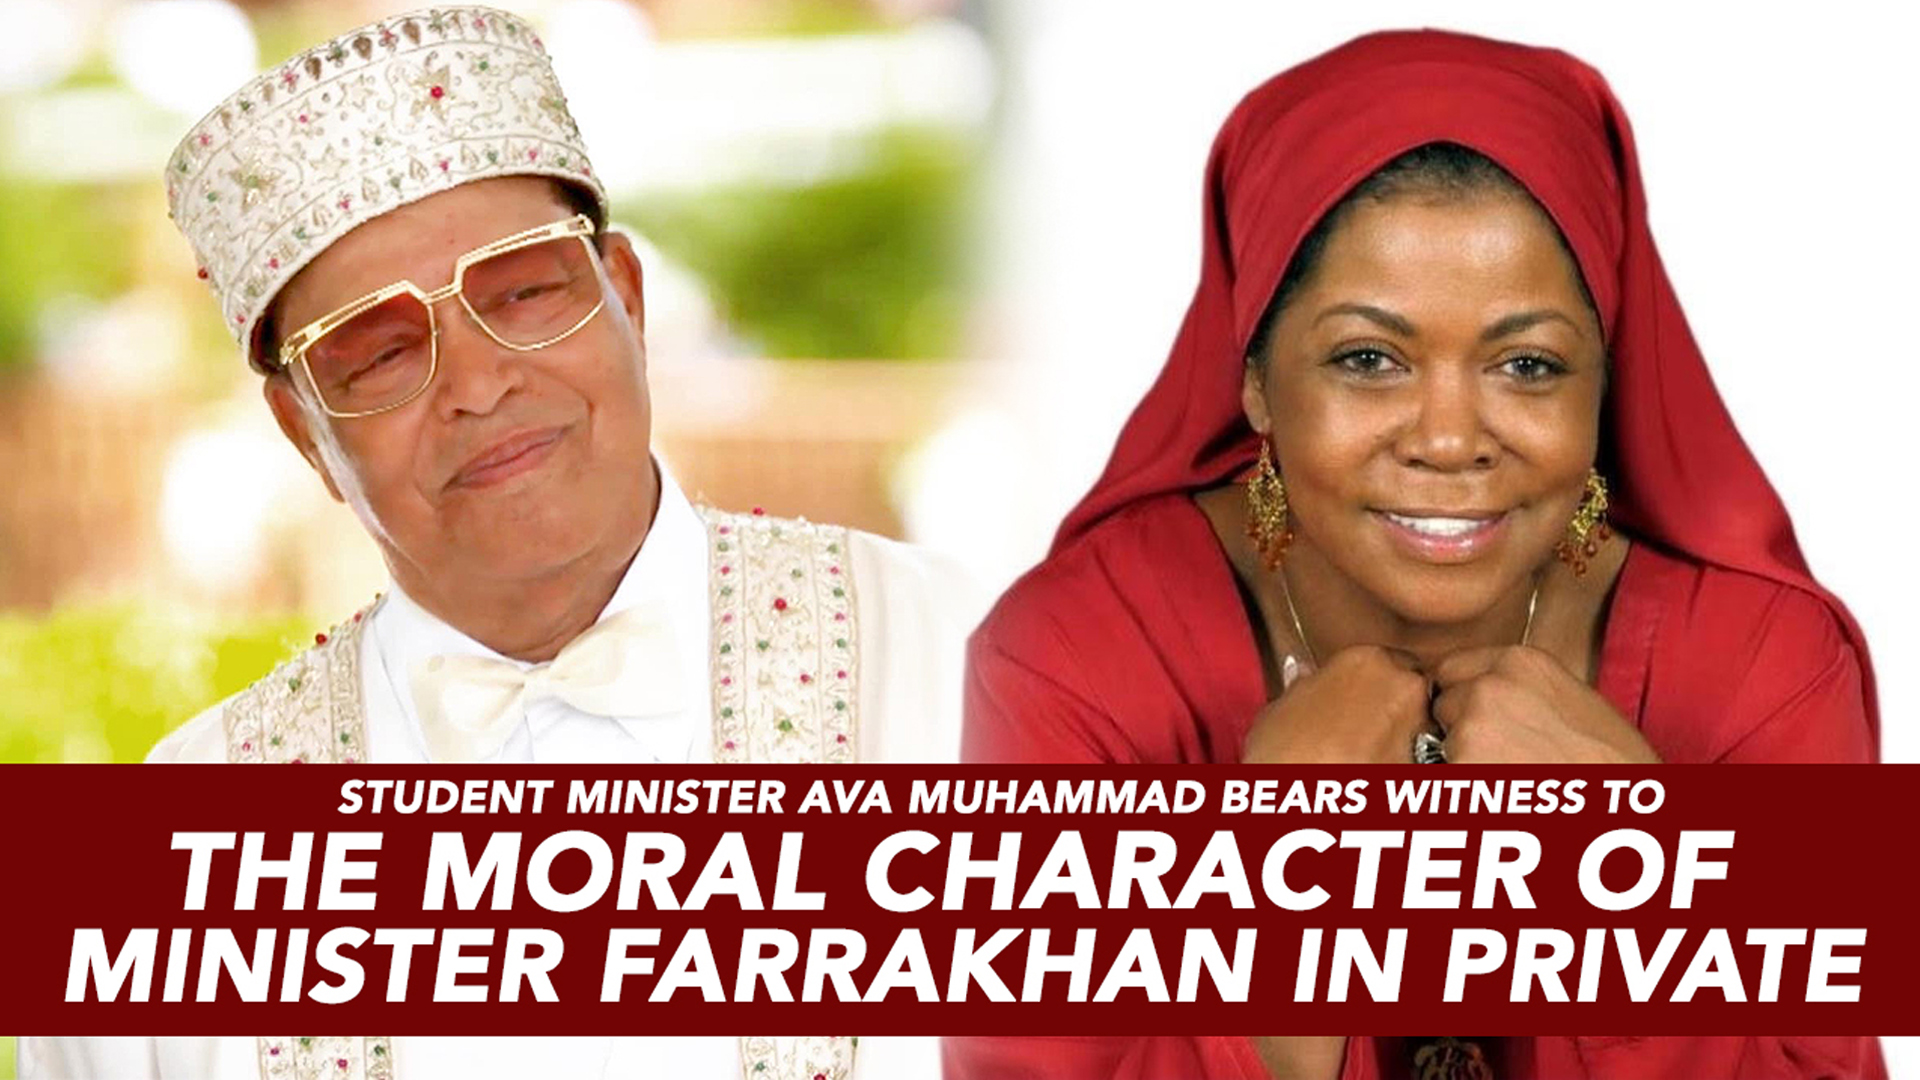 The Moral Character of Minister Farrakhan In Private